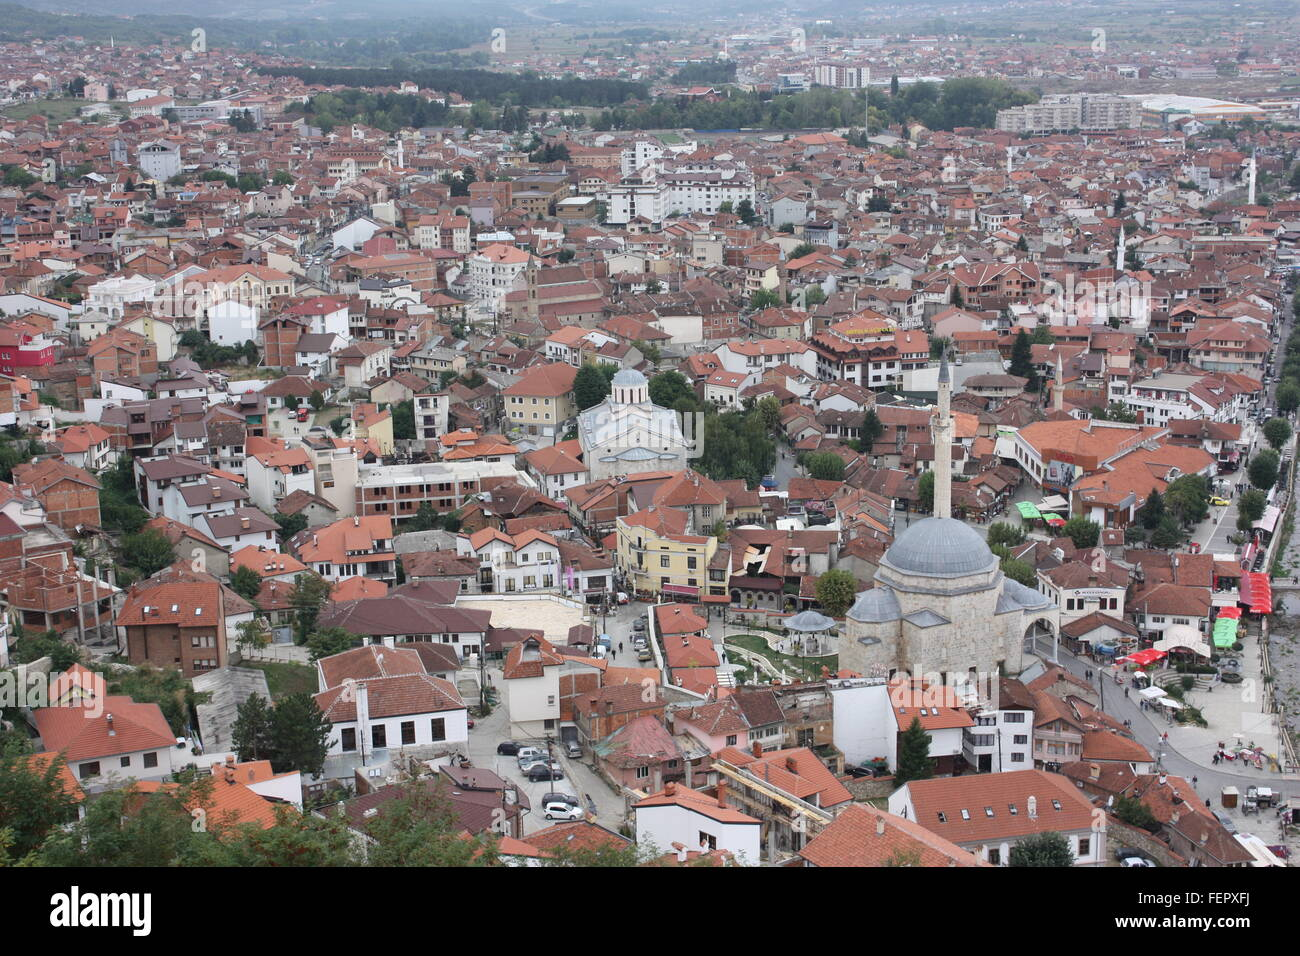 The city of Prizren in Kosovo - Stock Image